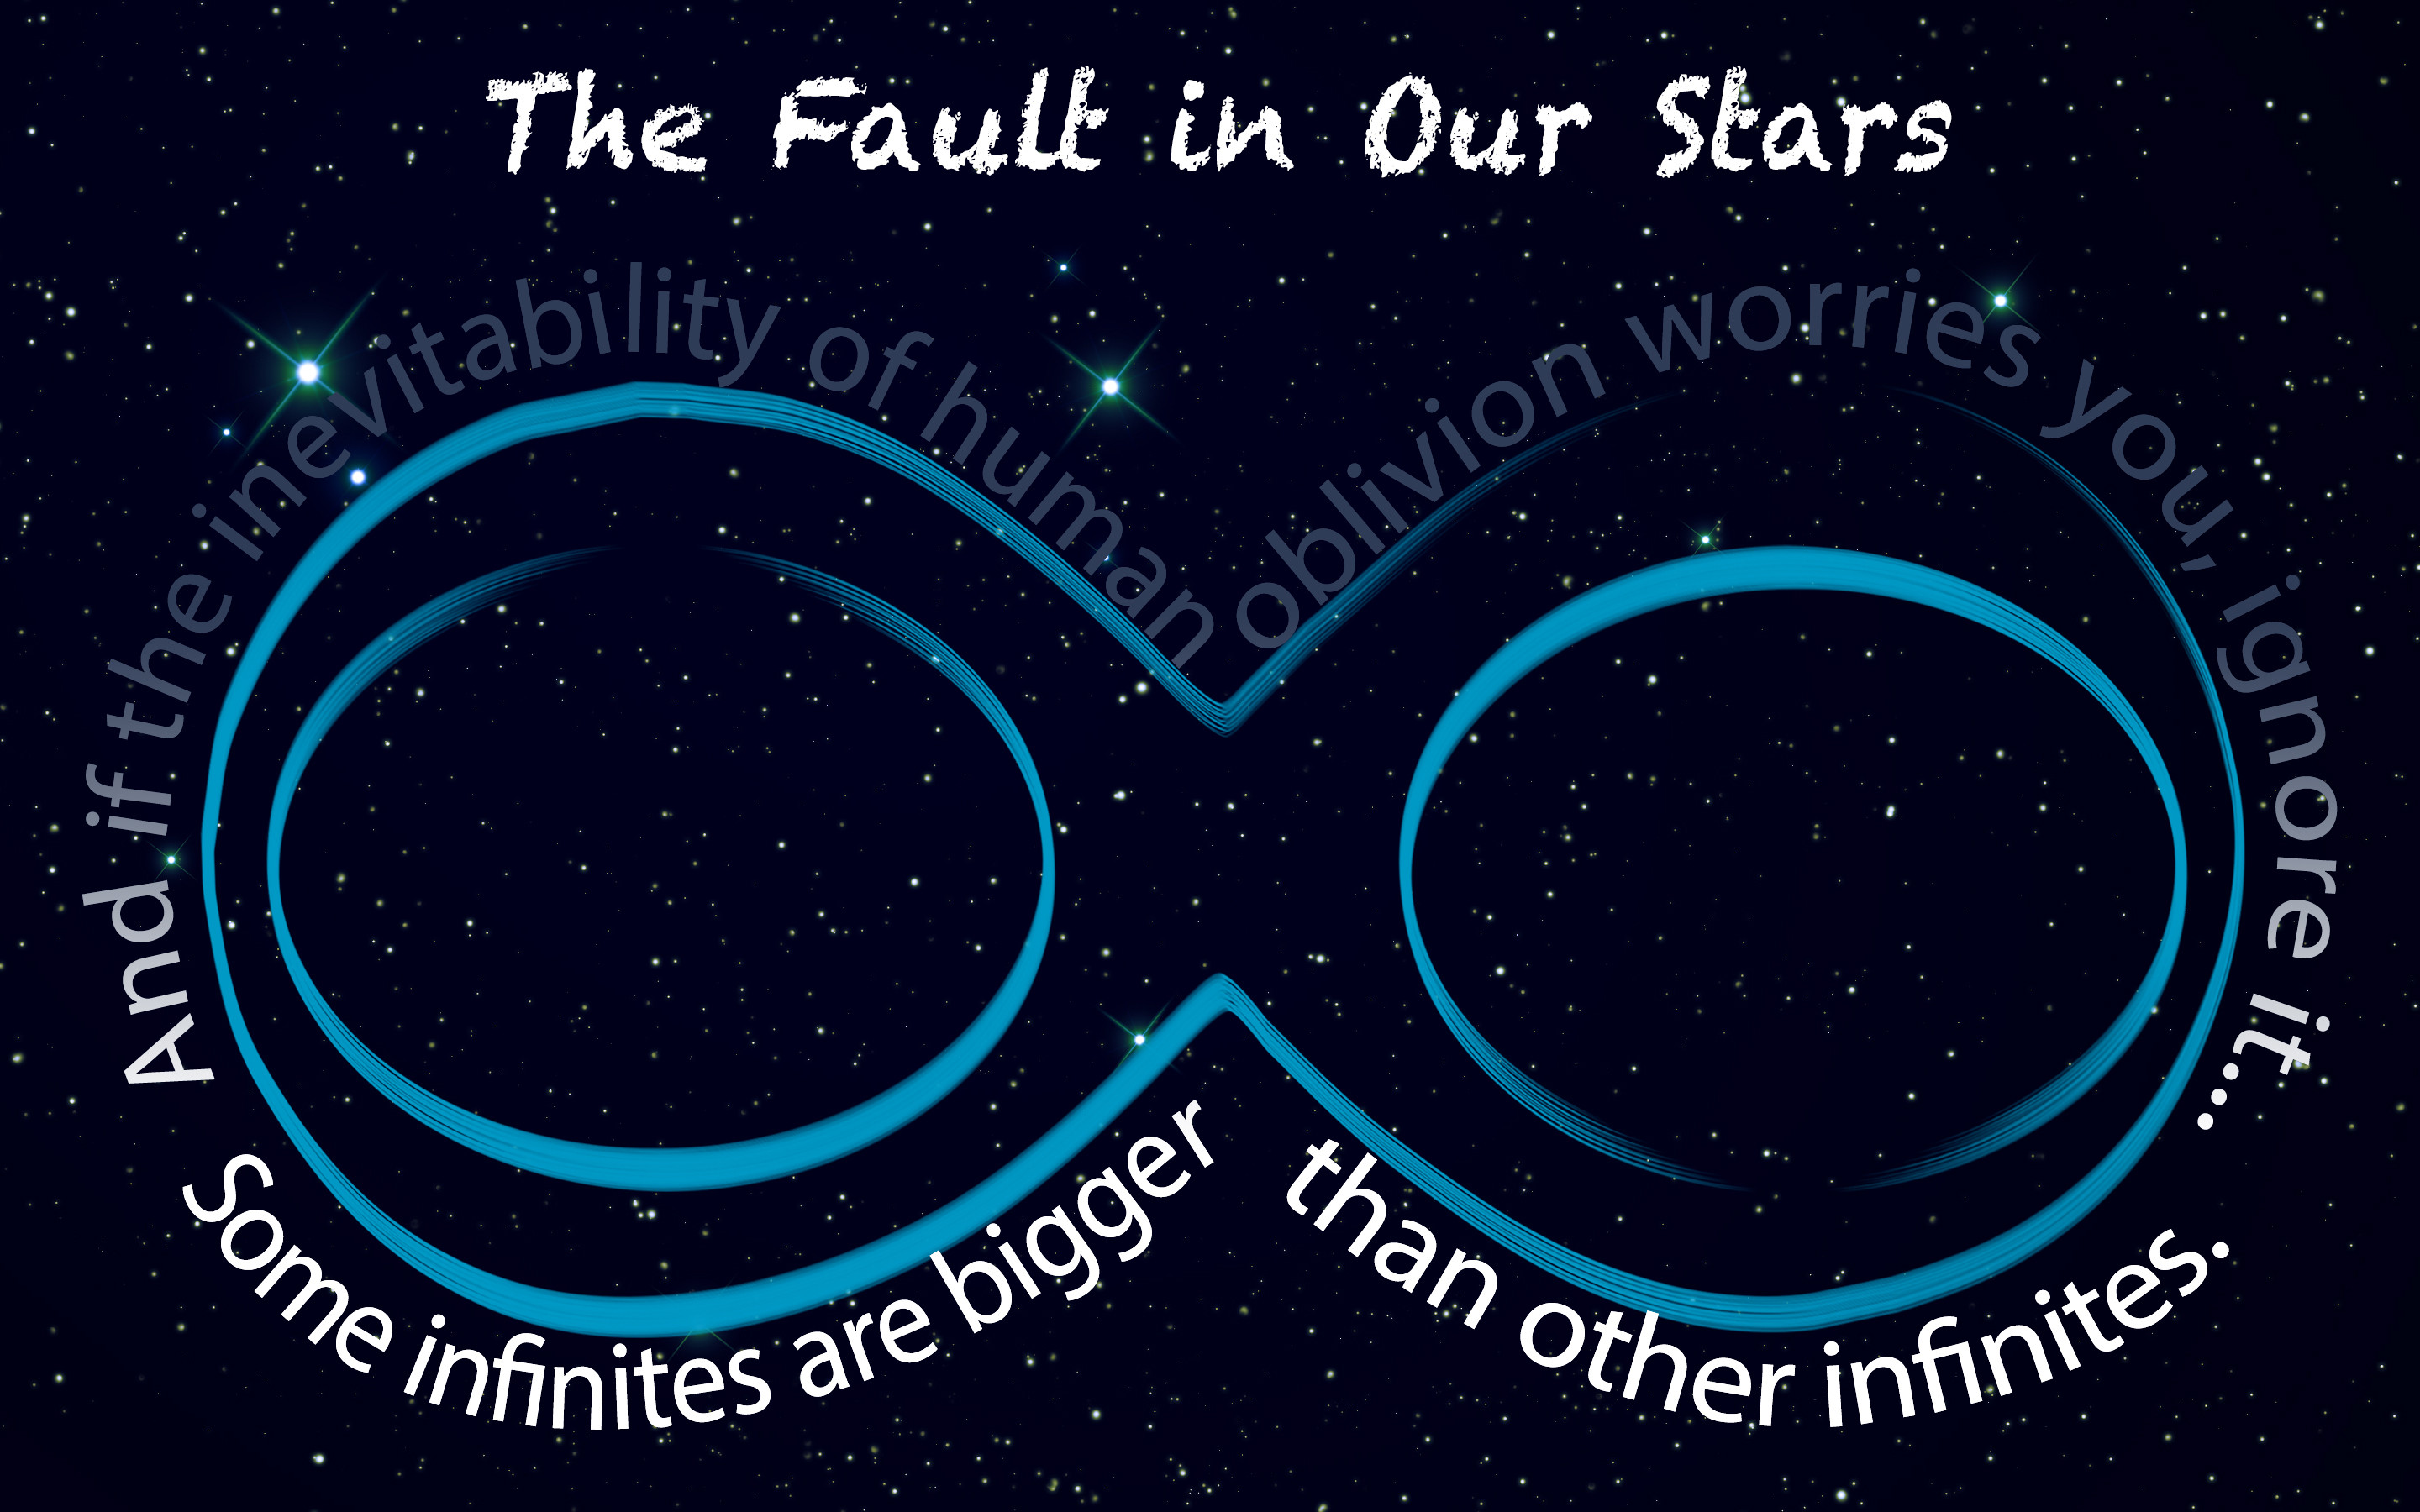 the fault in our stars sparknotes